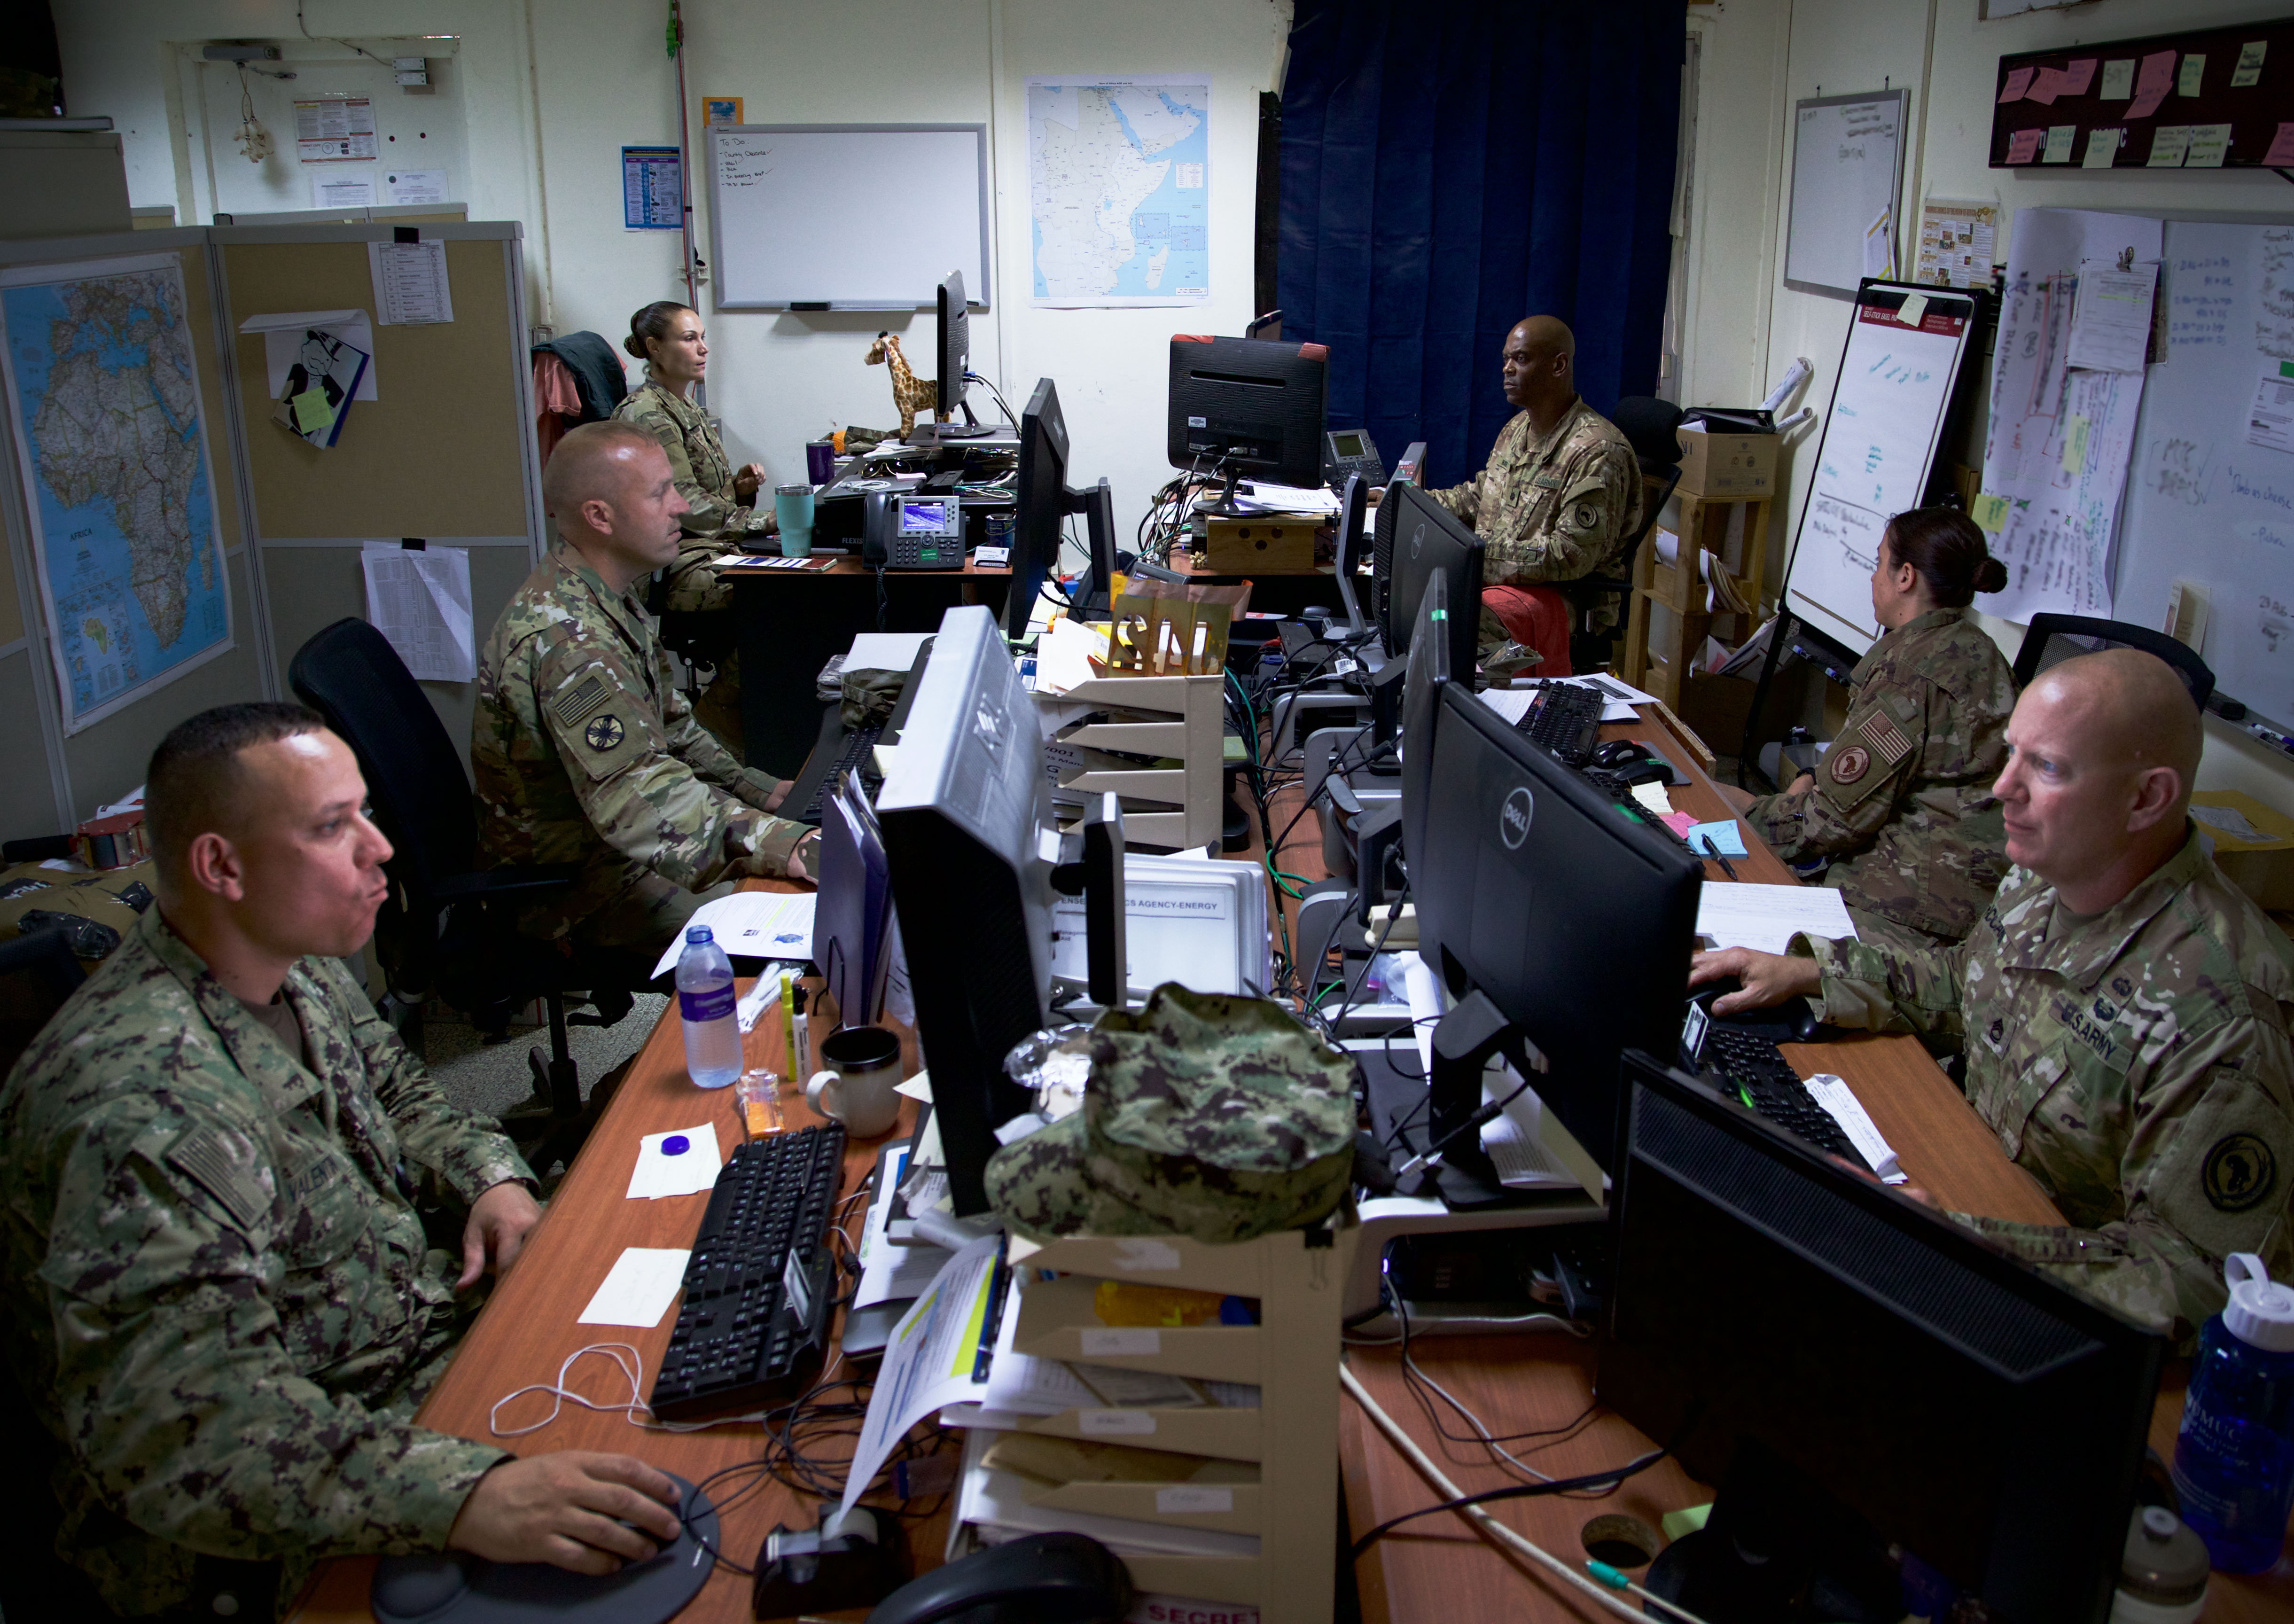 Members of the Combined Joint Task Force-Horn of Africa Logistics Directorate's Base Operating Support-Integrator office coordinate support resources at Camp Lemonnier, Djibouti, August 18, 2017. U.S. Africa Command designated CJTF-HOA as BOS-I in August 2016, putting the 500-person task force in charge of coordinating the efficient use of mission resources to sustain U.S. forces in forward operating locations in Somalia. Currently, CJTF-HOA's main effort is to improve security in Somalia by neutralizing violent extremist organizations like al-Shabaab and successfully transitioning security responsibilities from the African Union Mission in Somalia to the Somali National Security Forces. (U.S. Army photo by Capt. Alán Ortiz)